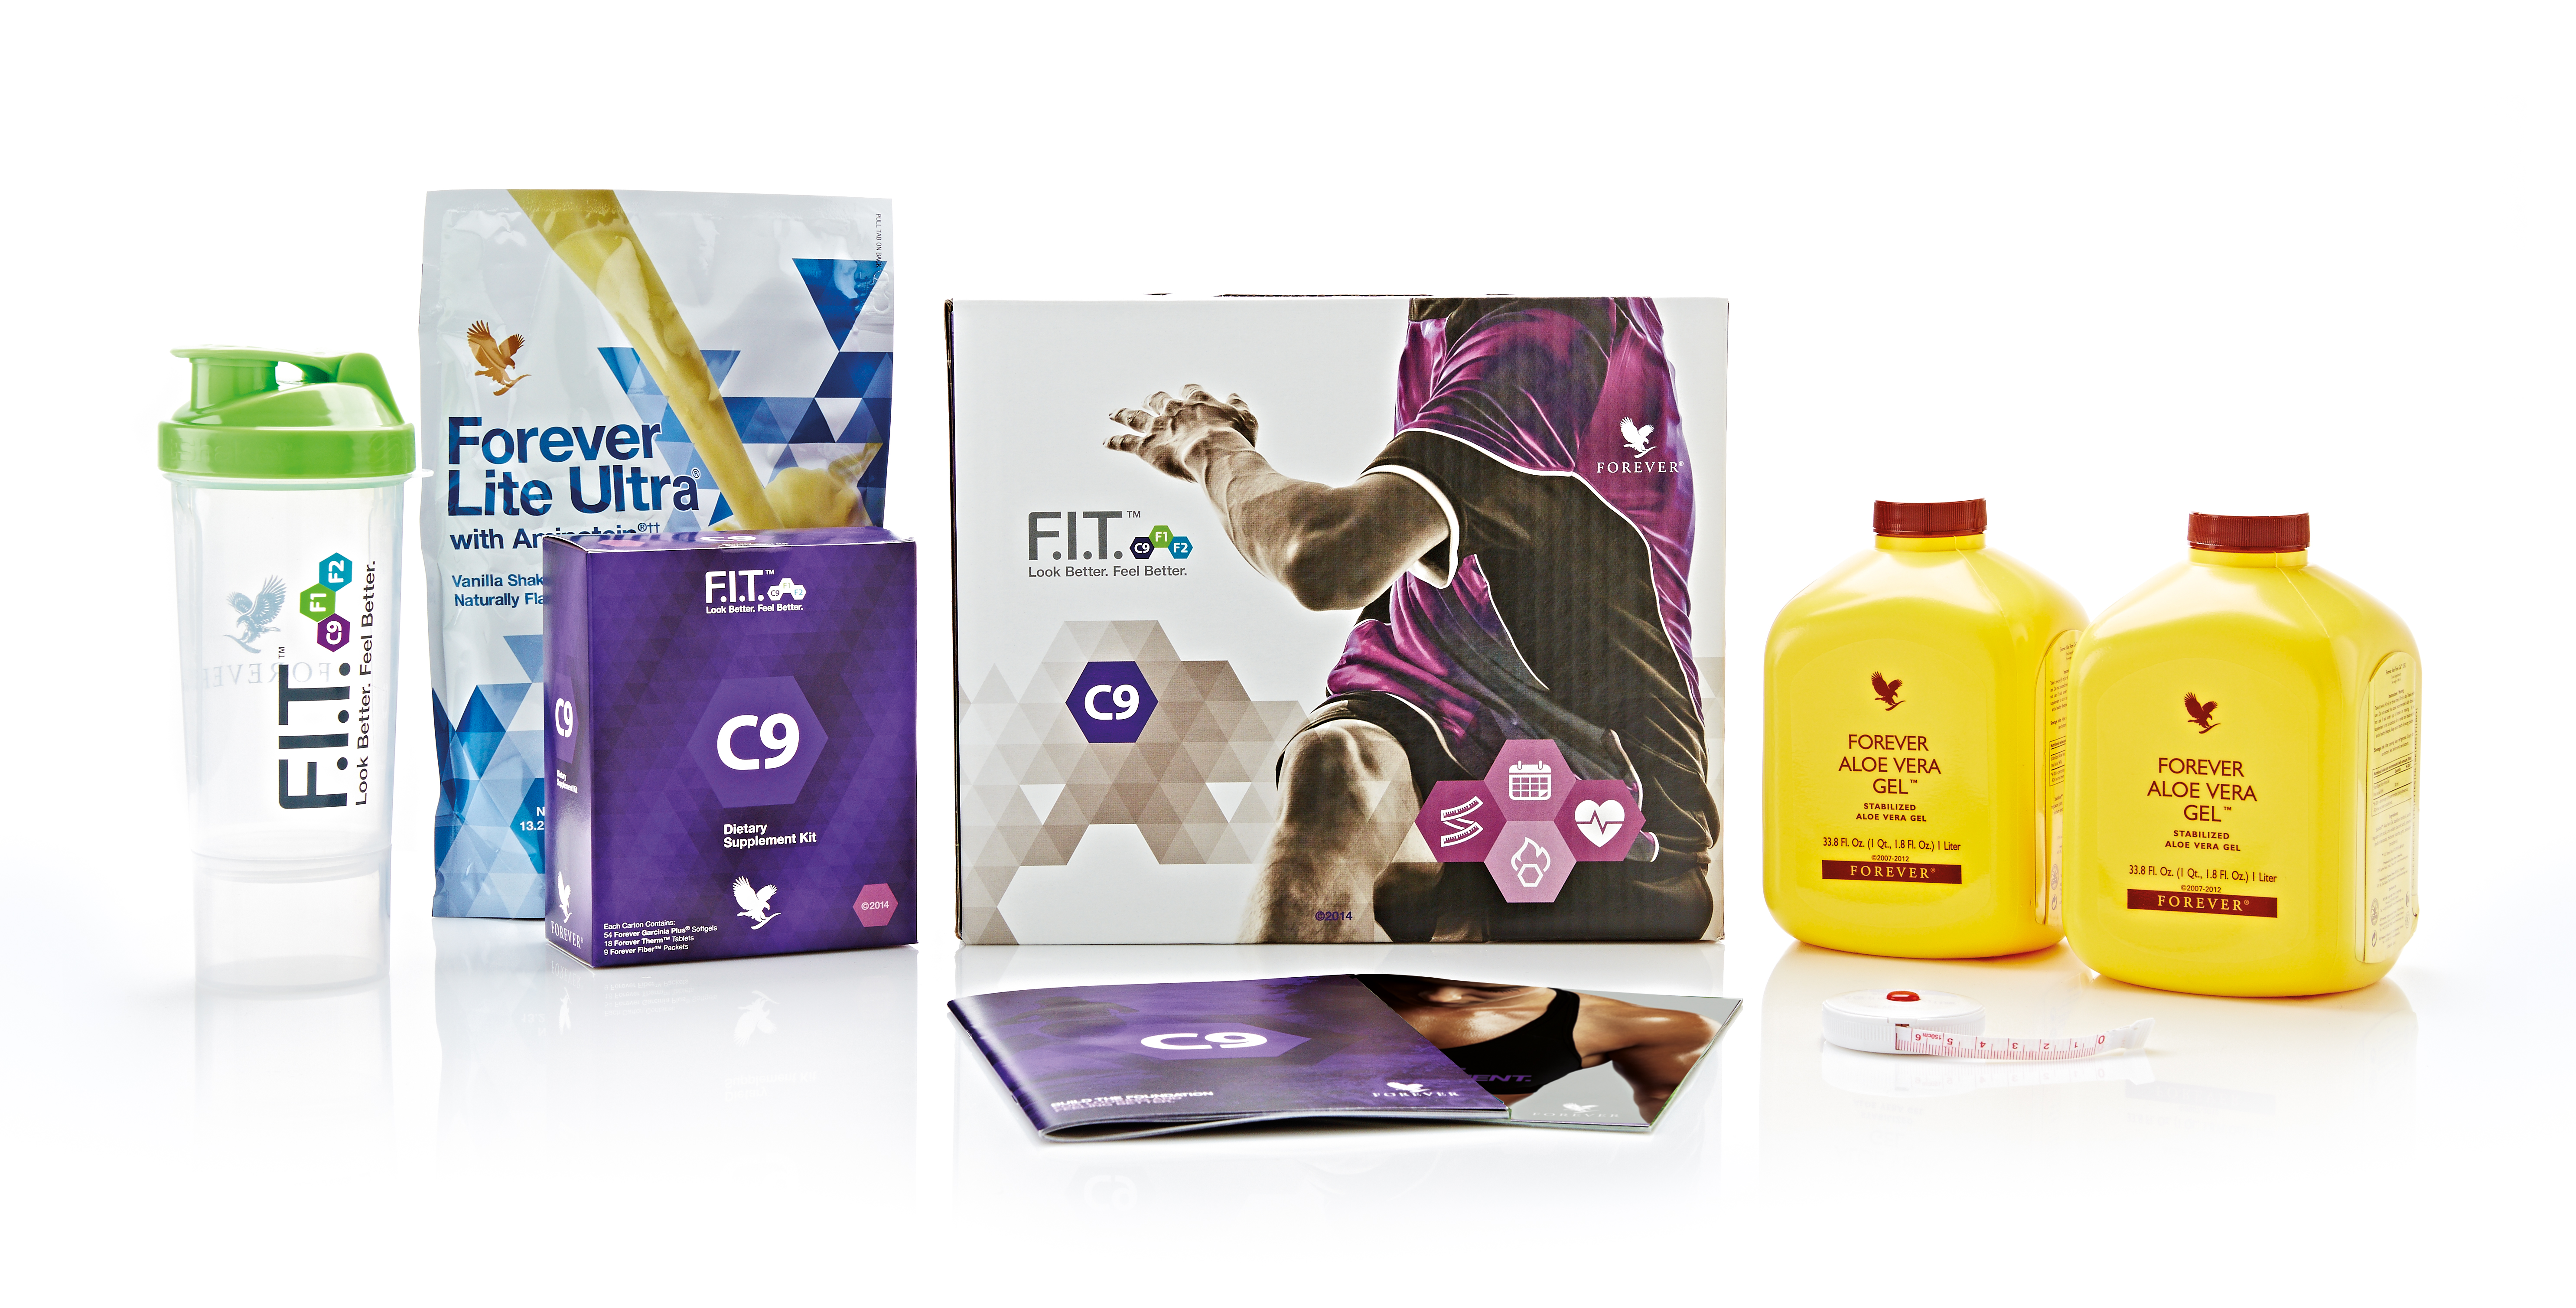 Clean 9 from Forever Living products